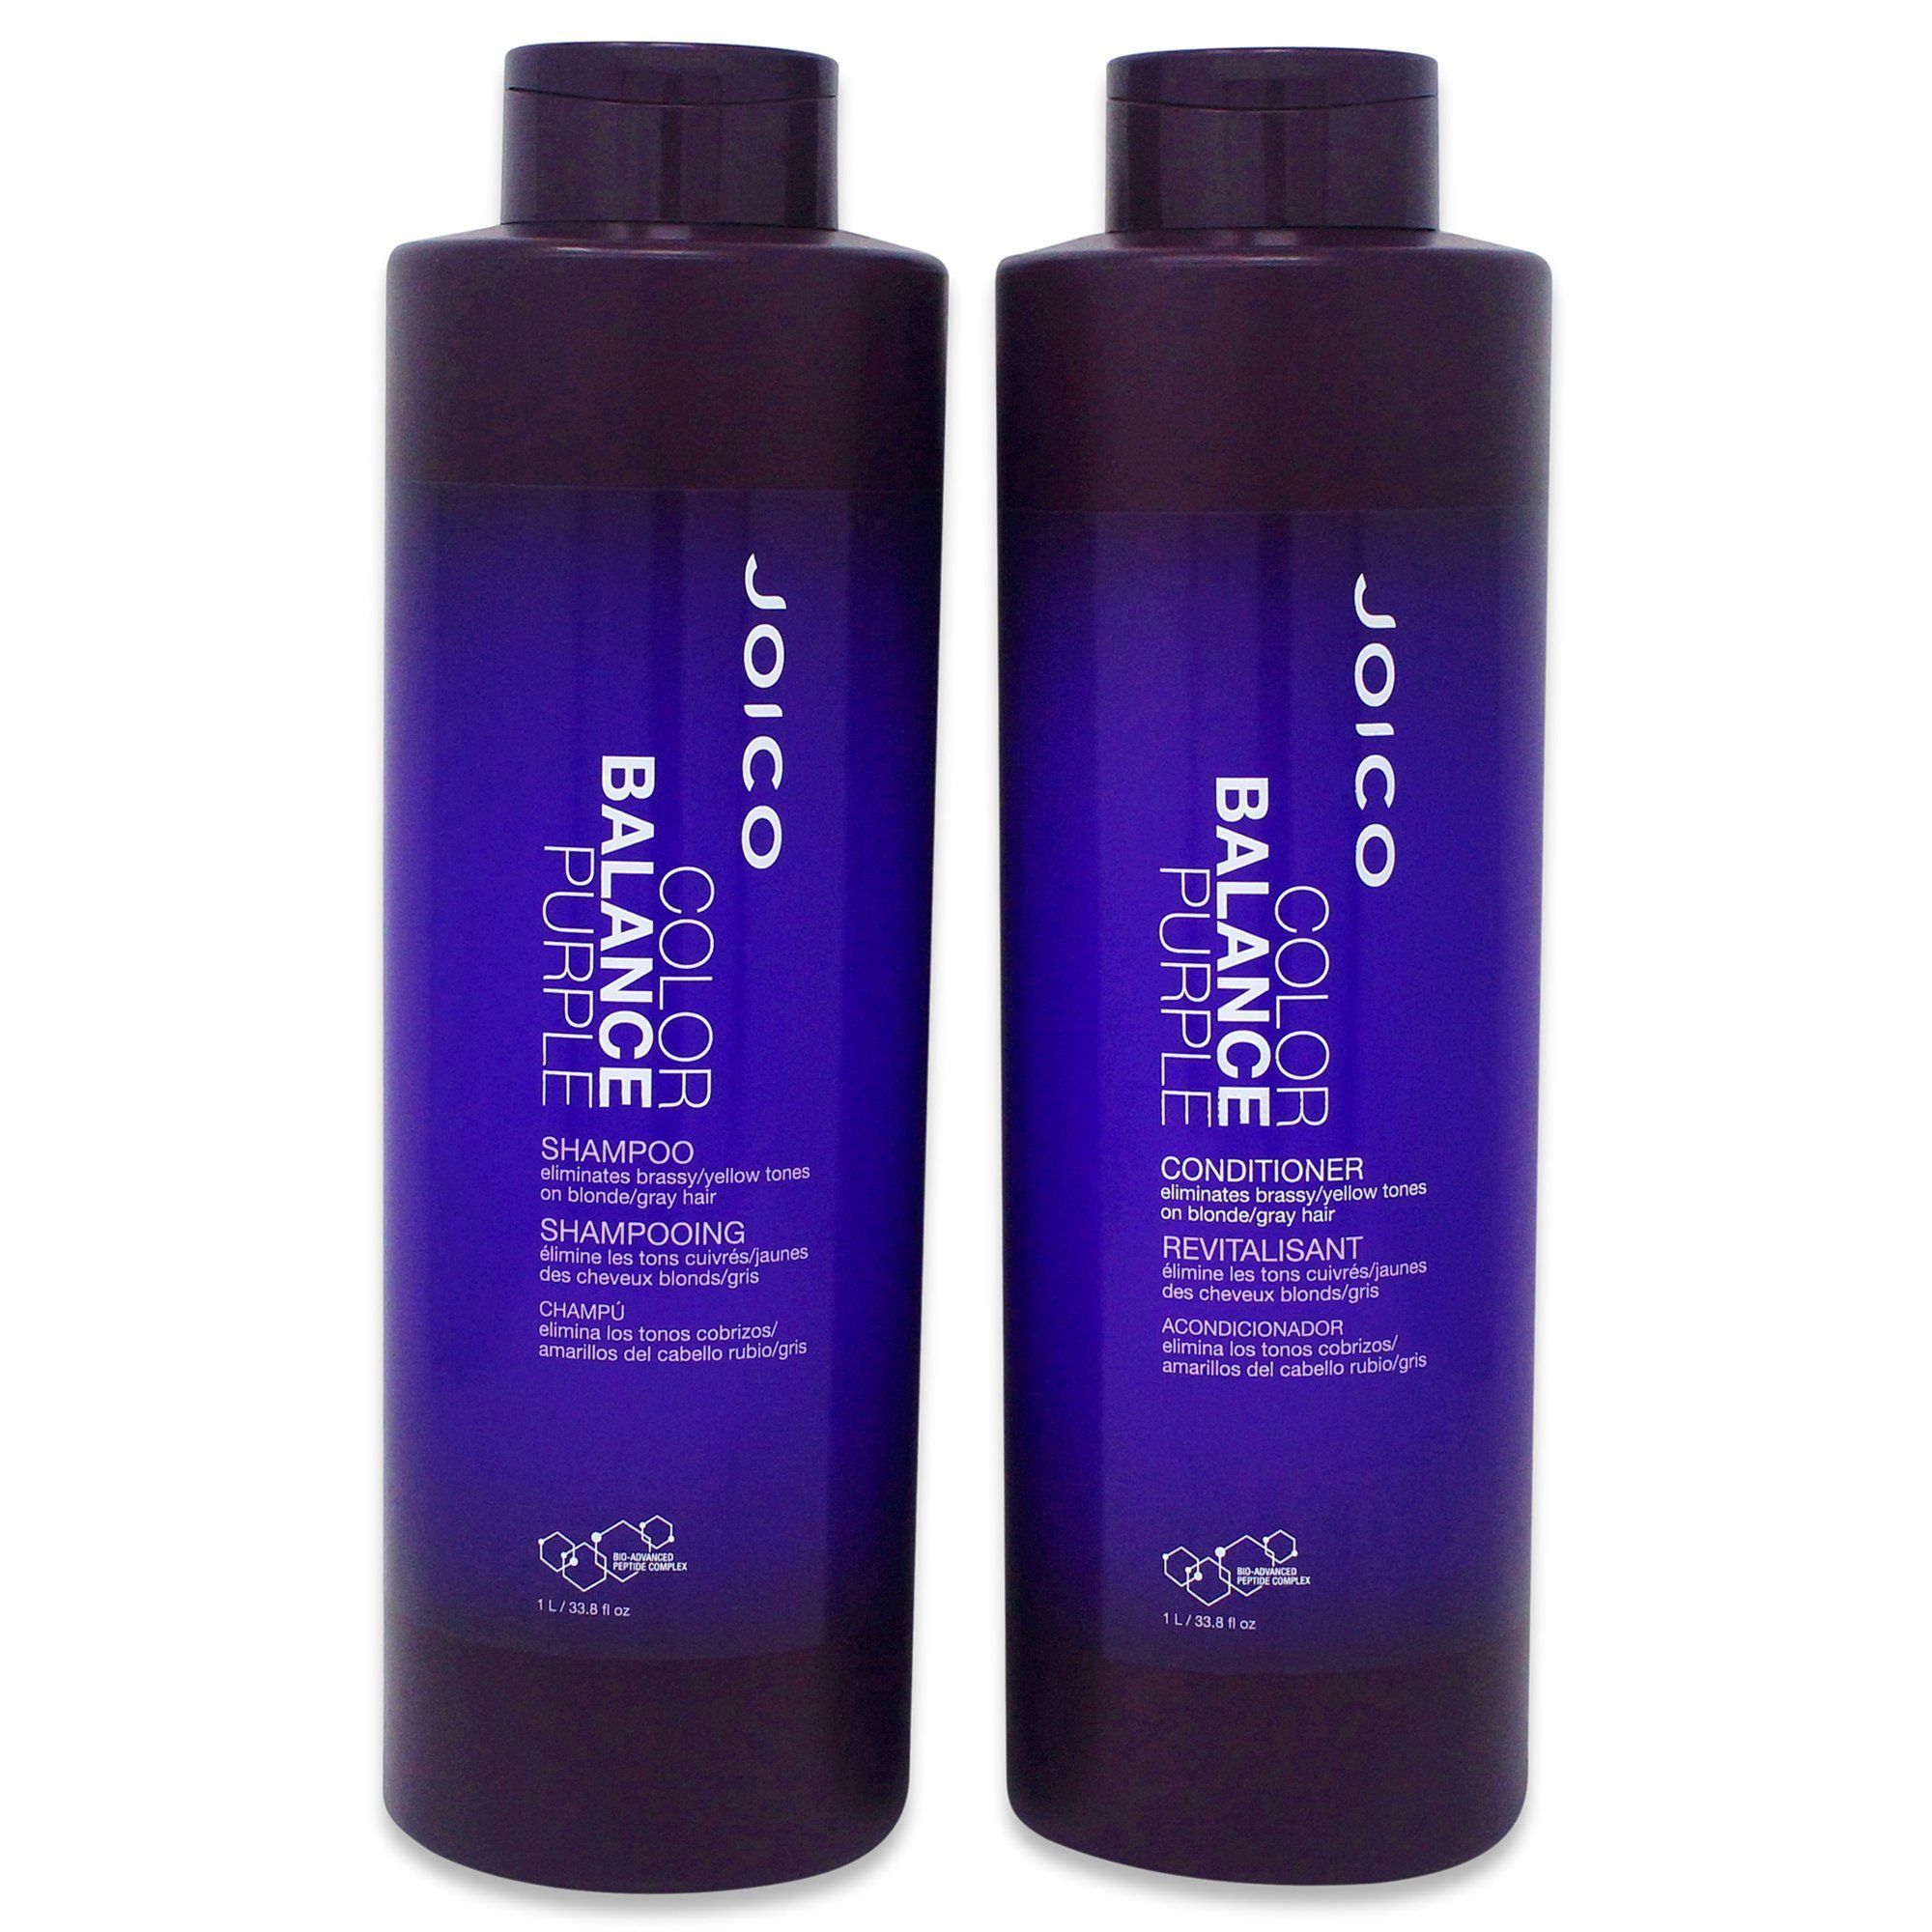 Joico Color Balance Purple Shampoo and Conditioner 33.8 Oz #purpleshampoo Joico Color Balance Purple Shampoo and Conditioner 33.8 Oz #purpleshampoo Joico Color Balance Purple Shampoo and Conditioner 33.8 Oz #purpleshampoo Joico Color Balance Purple Shampoo and Conditioner 33.8 Oz #purpleshampoo Joico Color Balance Purple Shampoo and Conditioner 33.8 Oz #purpleshampoo Joico Color Balance Purple Shampoo and Conditioner 33.8 Oz #purpleshampoo Joico Color Balance Purple Shampoo and Conditioner 33.8 #purpleshampoo